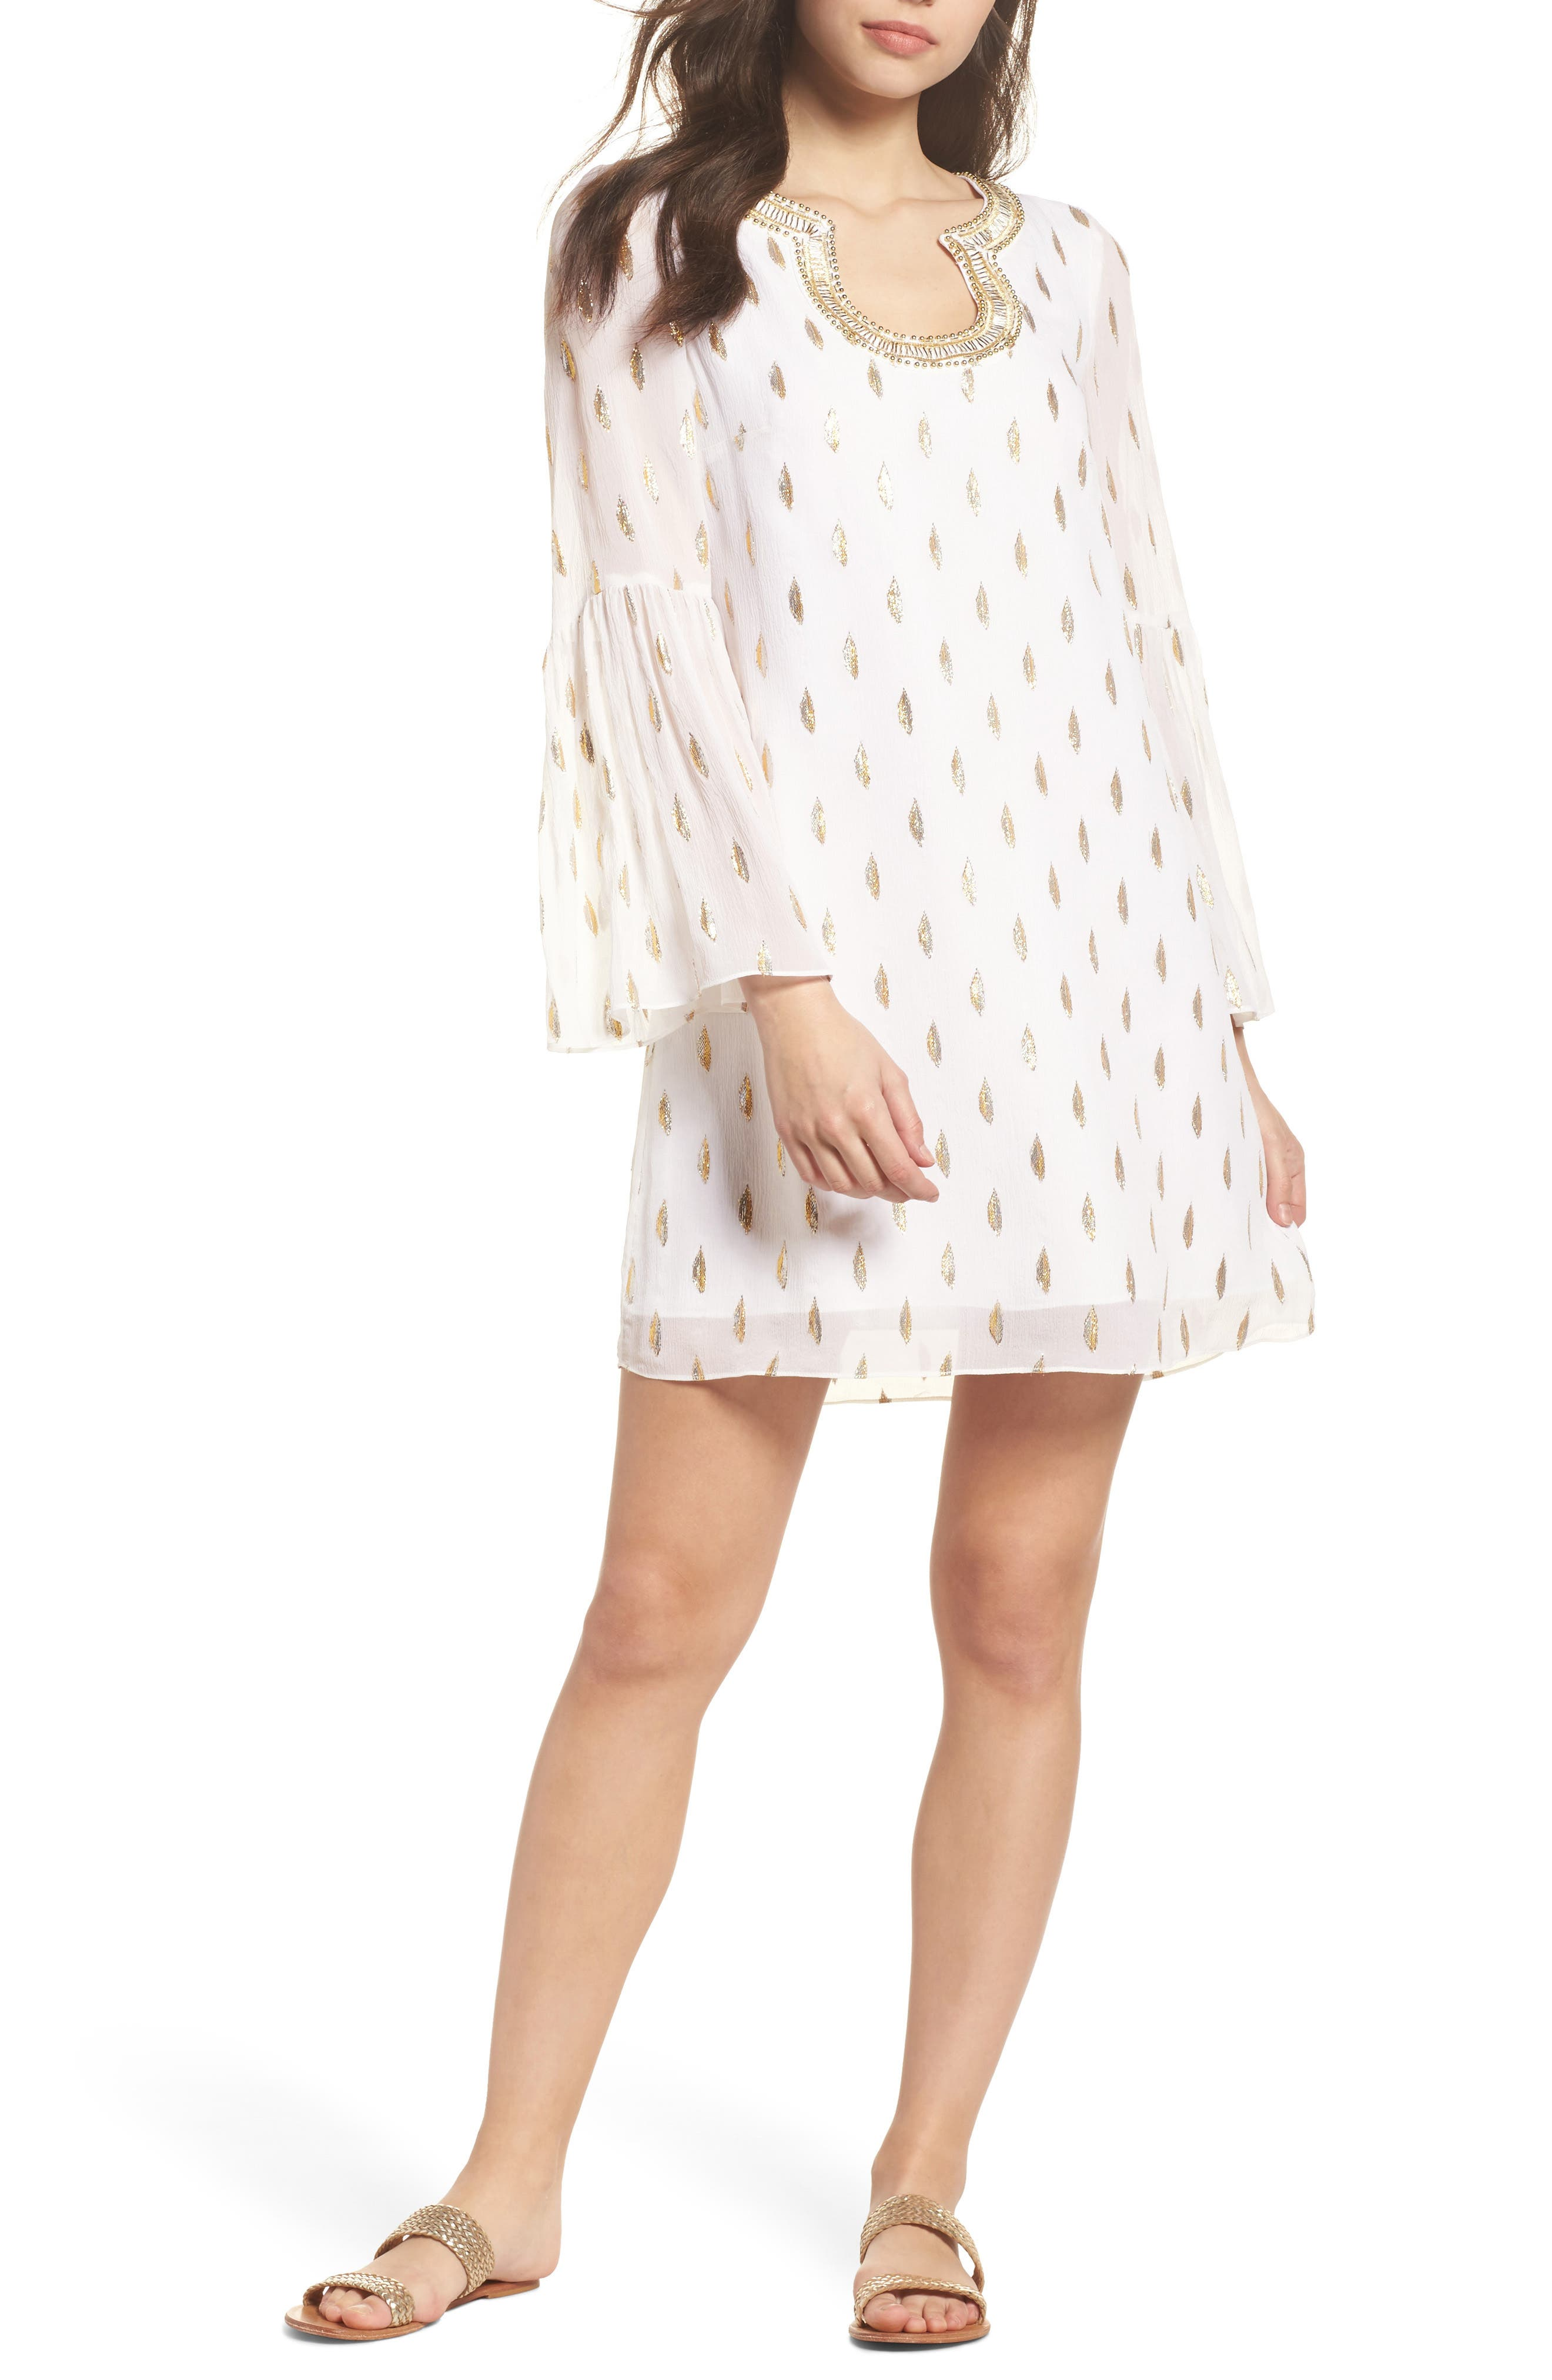 Amory Silk Tunic Dress,                         Main,                         color, Resort White Diamond Metallic